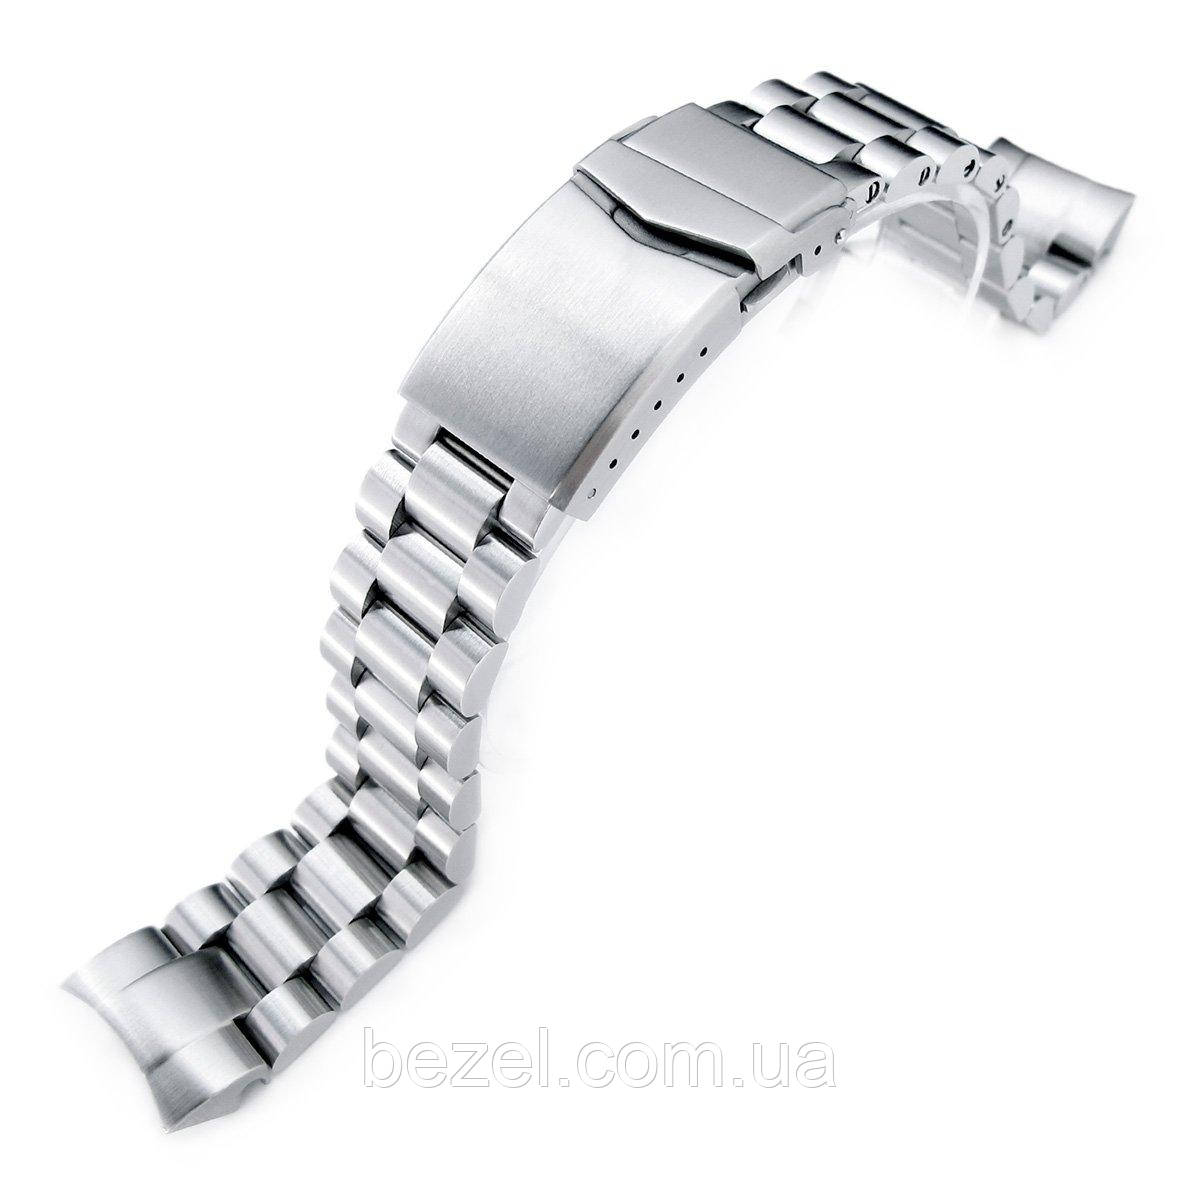 22mm Endmill 316L Stainless Steel Watch Bracelet for Orient Mako II & Ray II, V-Clasp Brushed